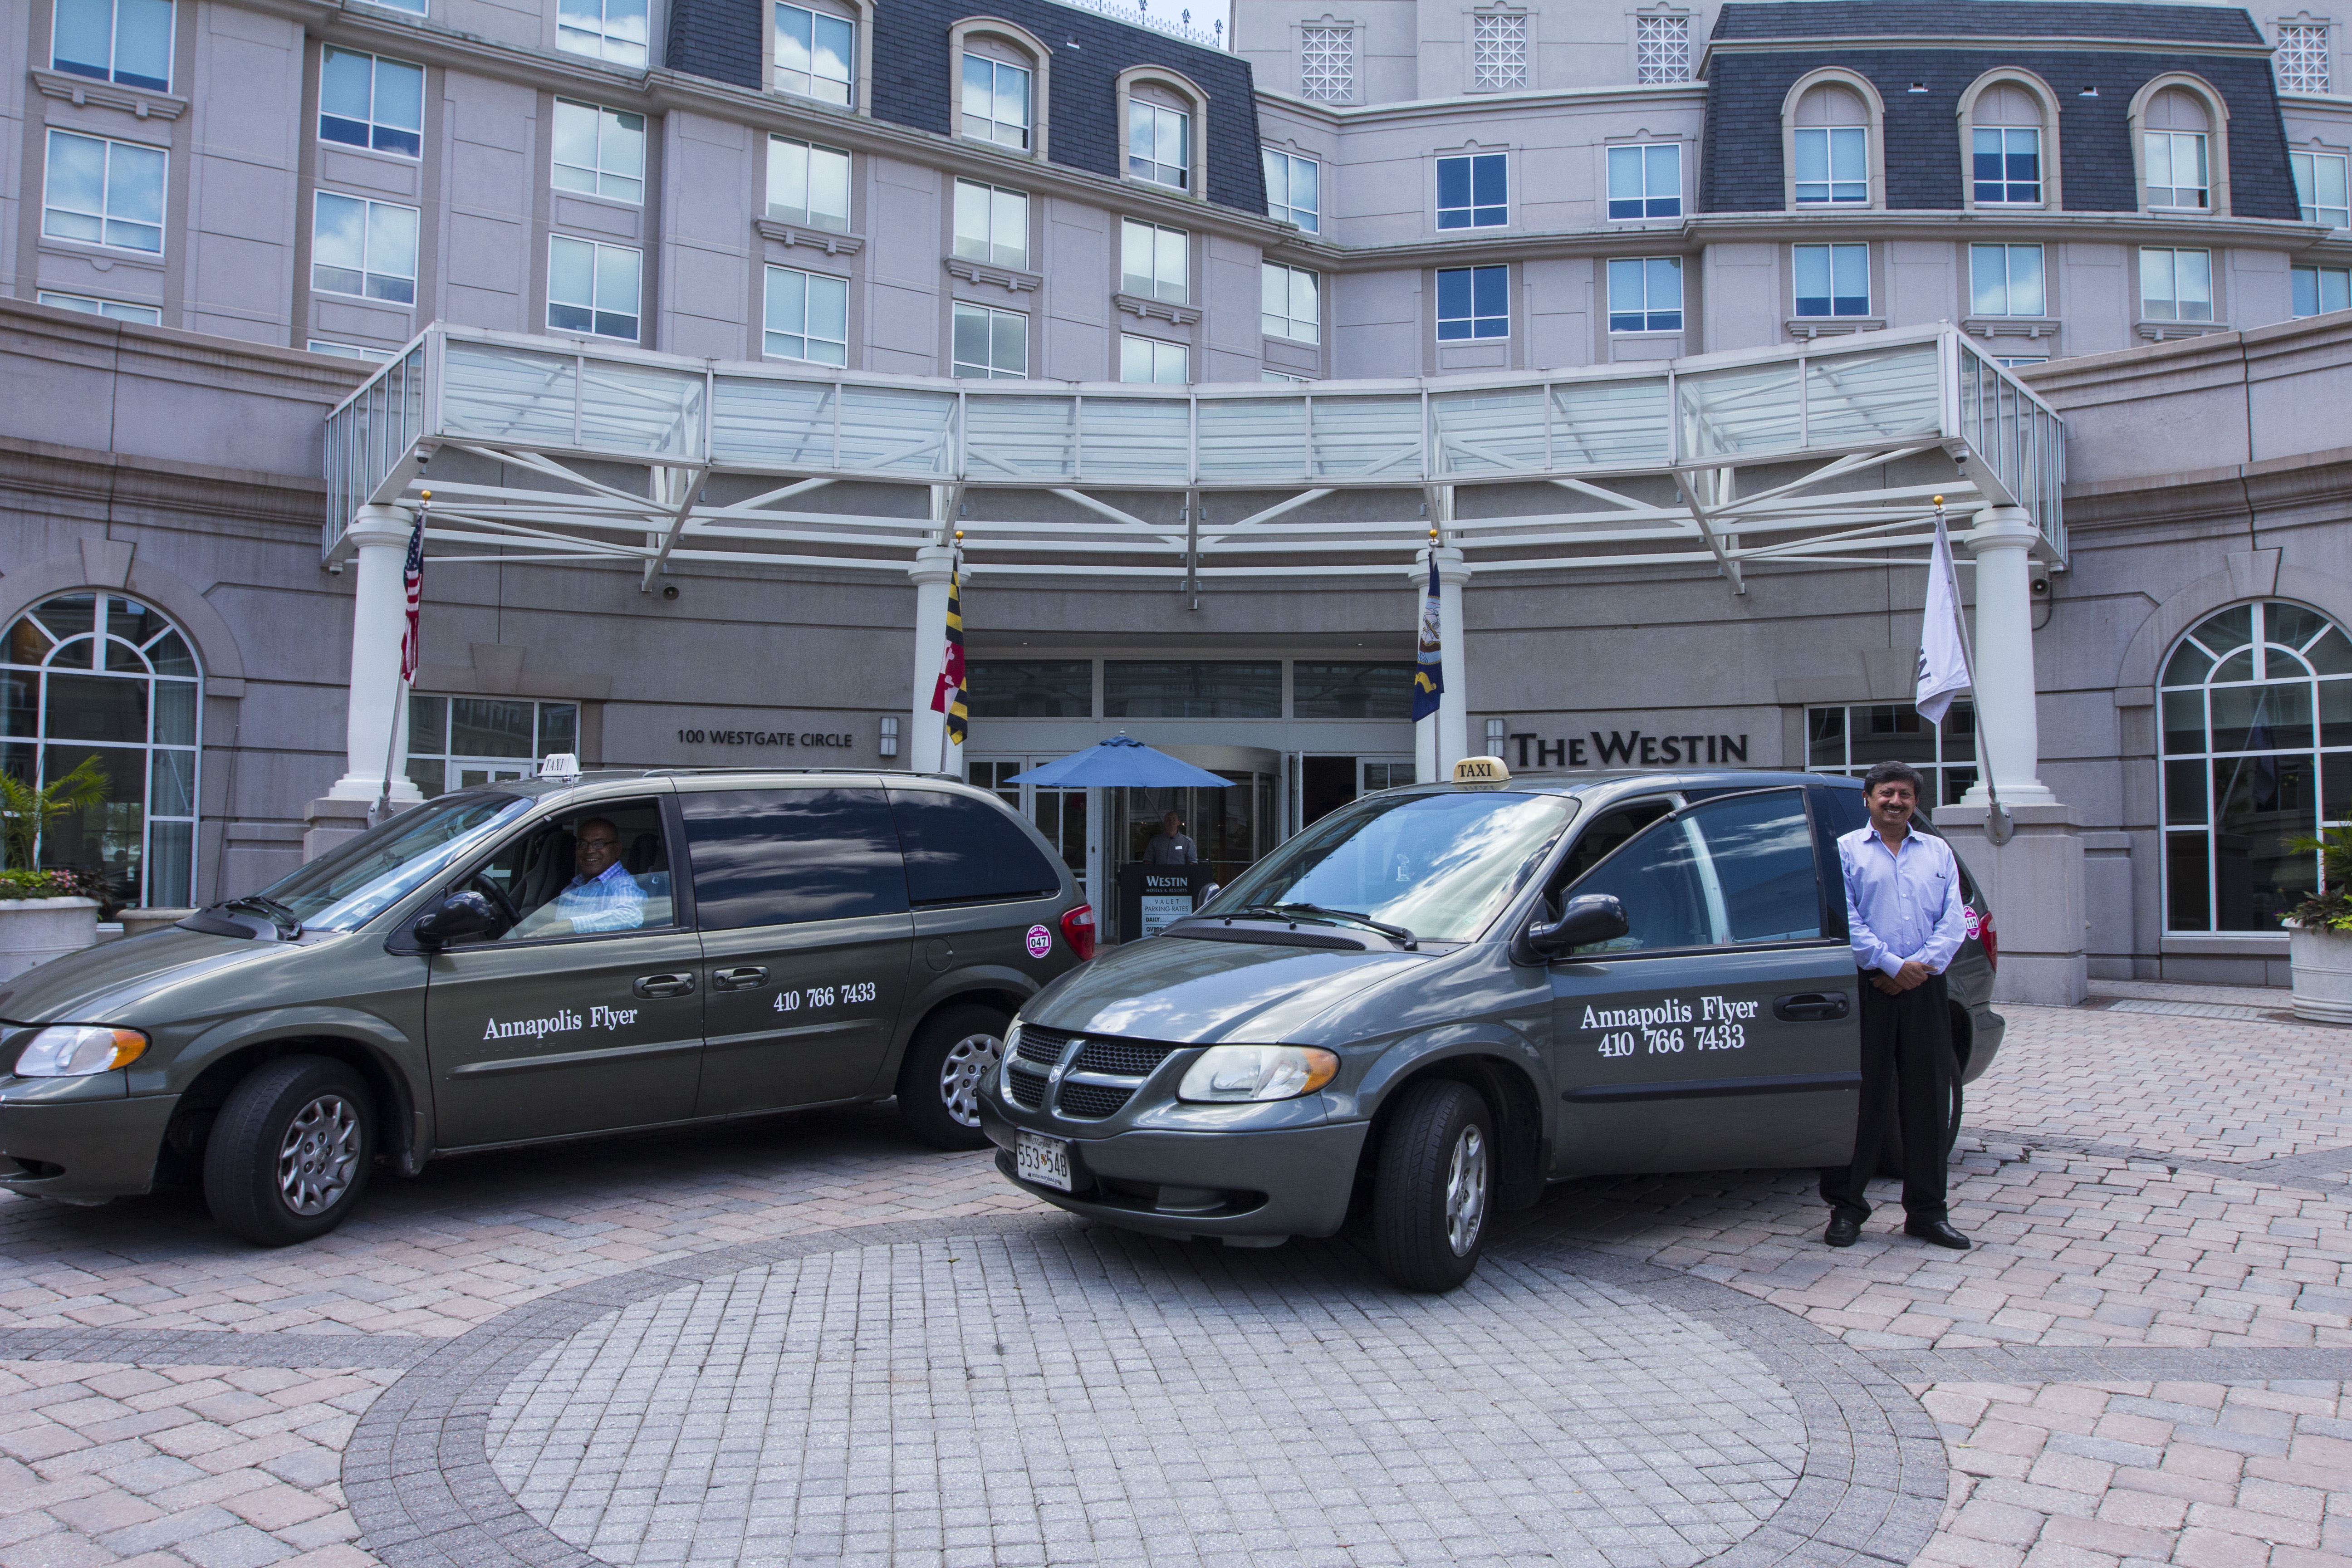 Annapolis Flyer Cab at The Westin in Annapolis